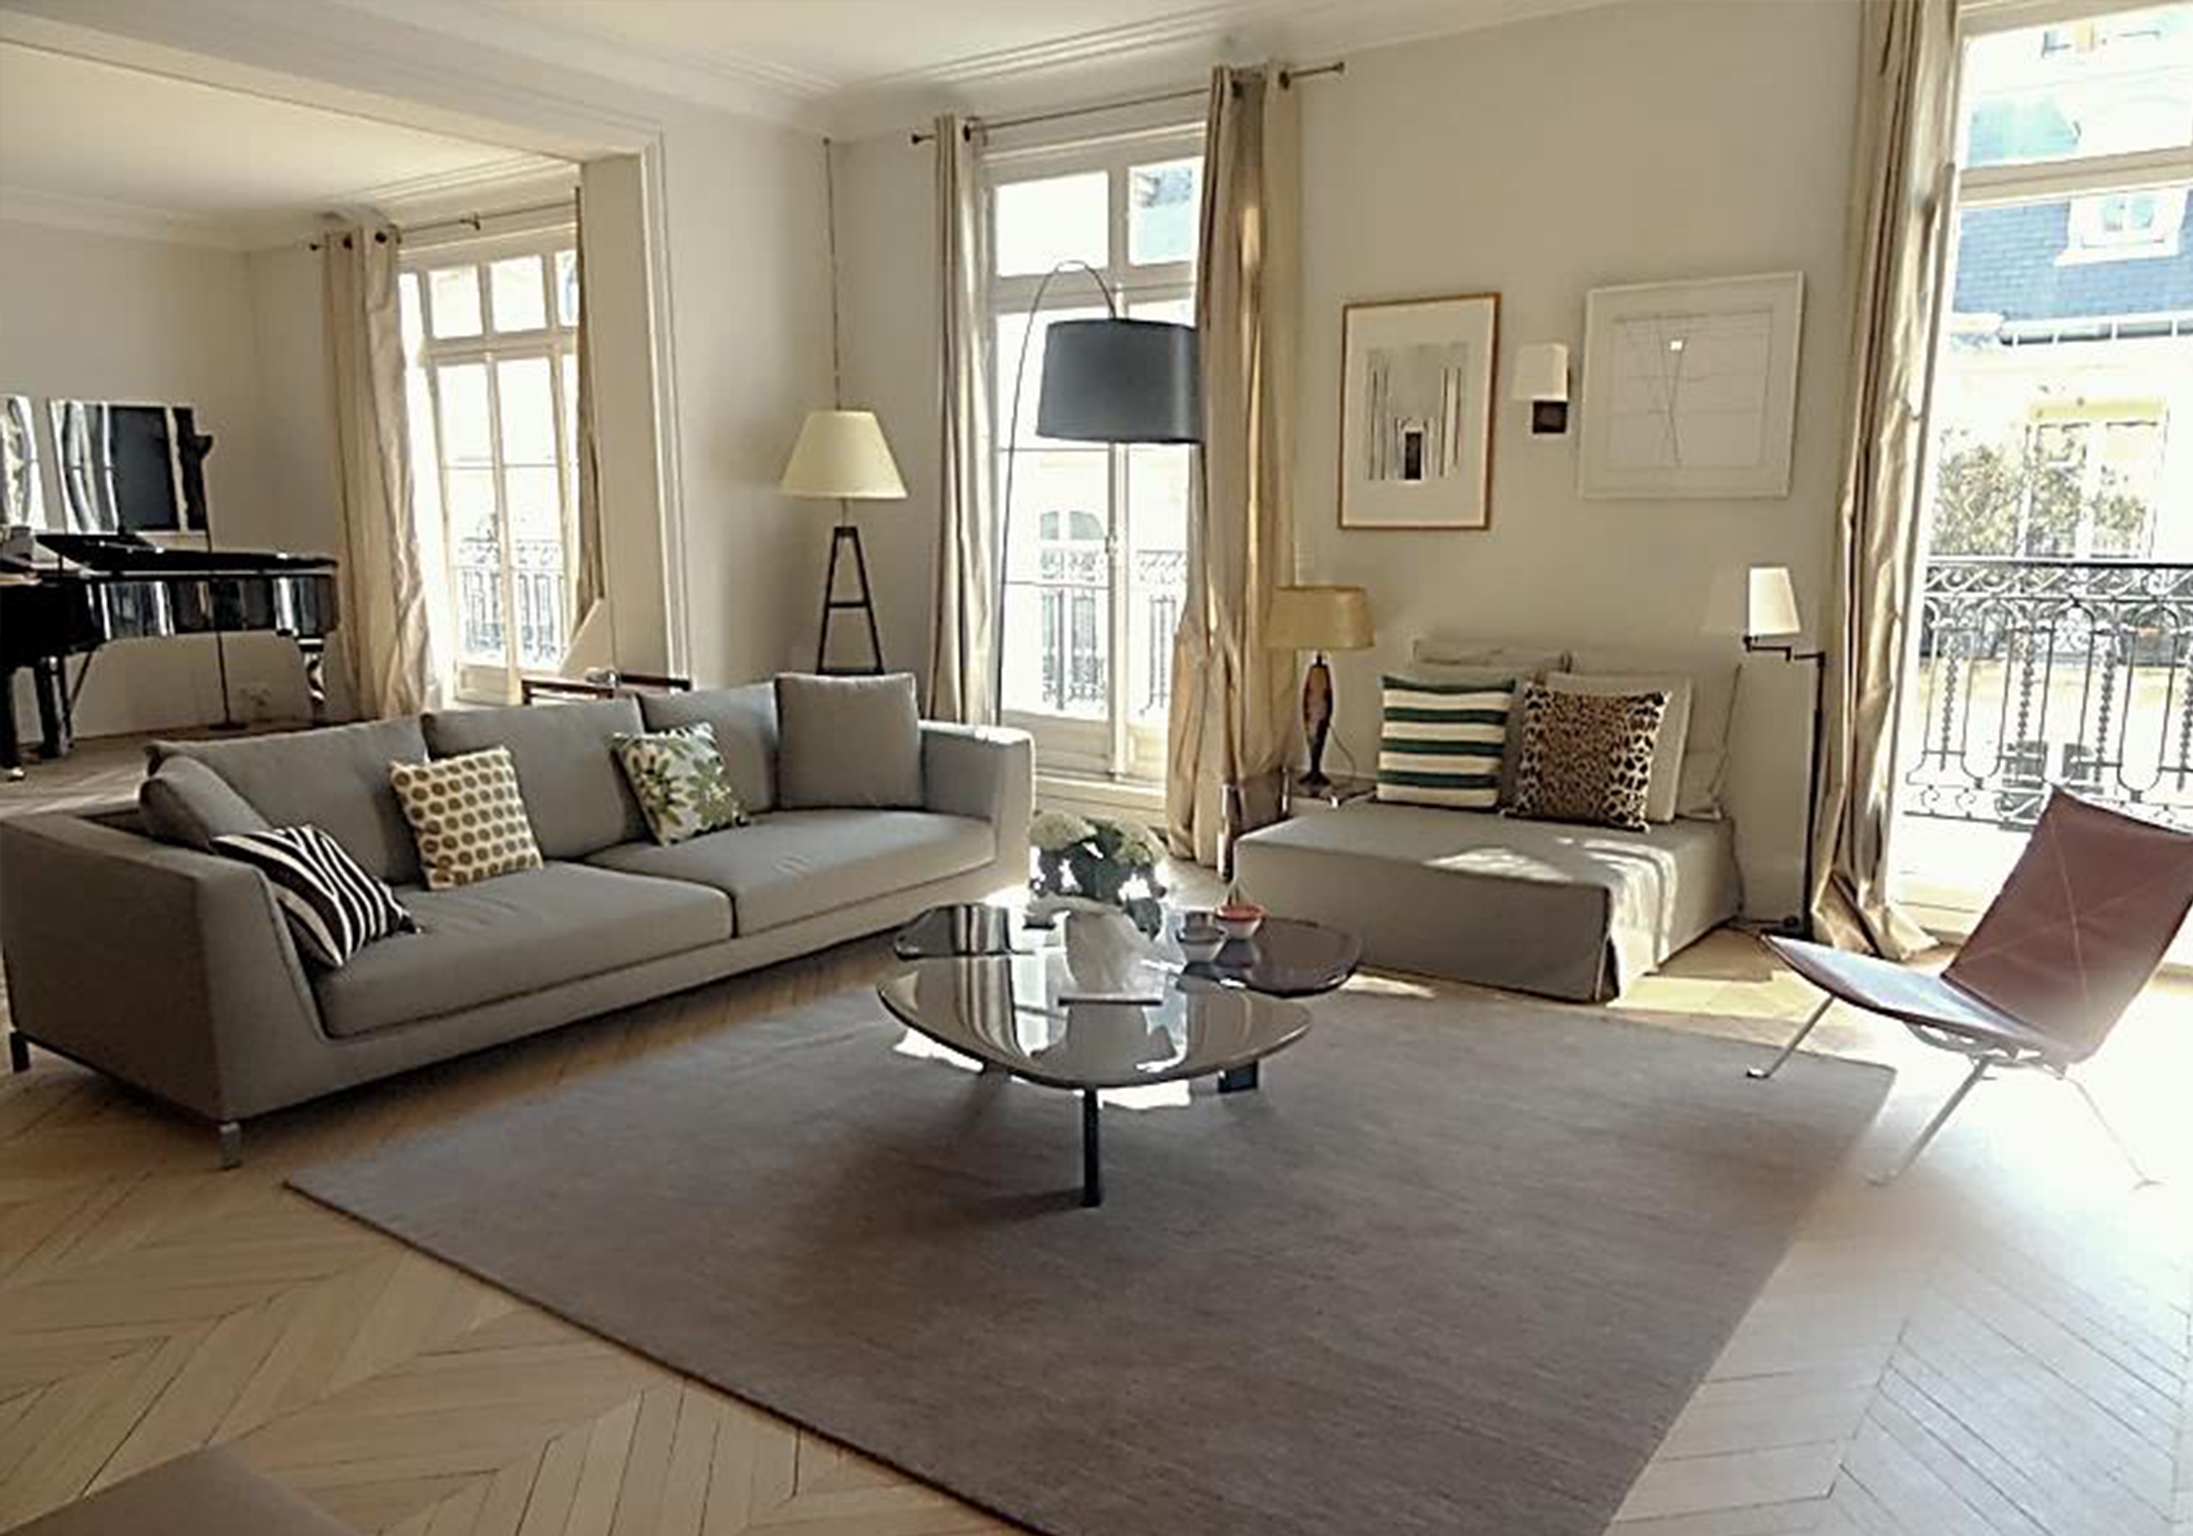 Interieur singulier appartement paris 16 - Decoration interieur salon moderne ...